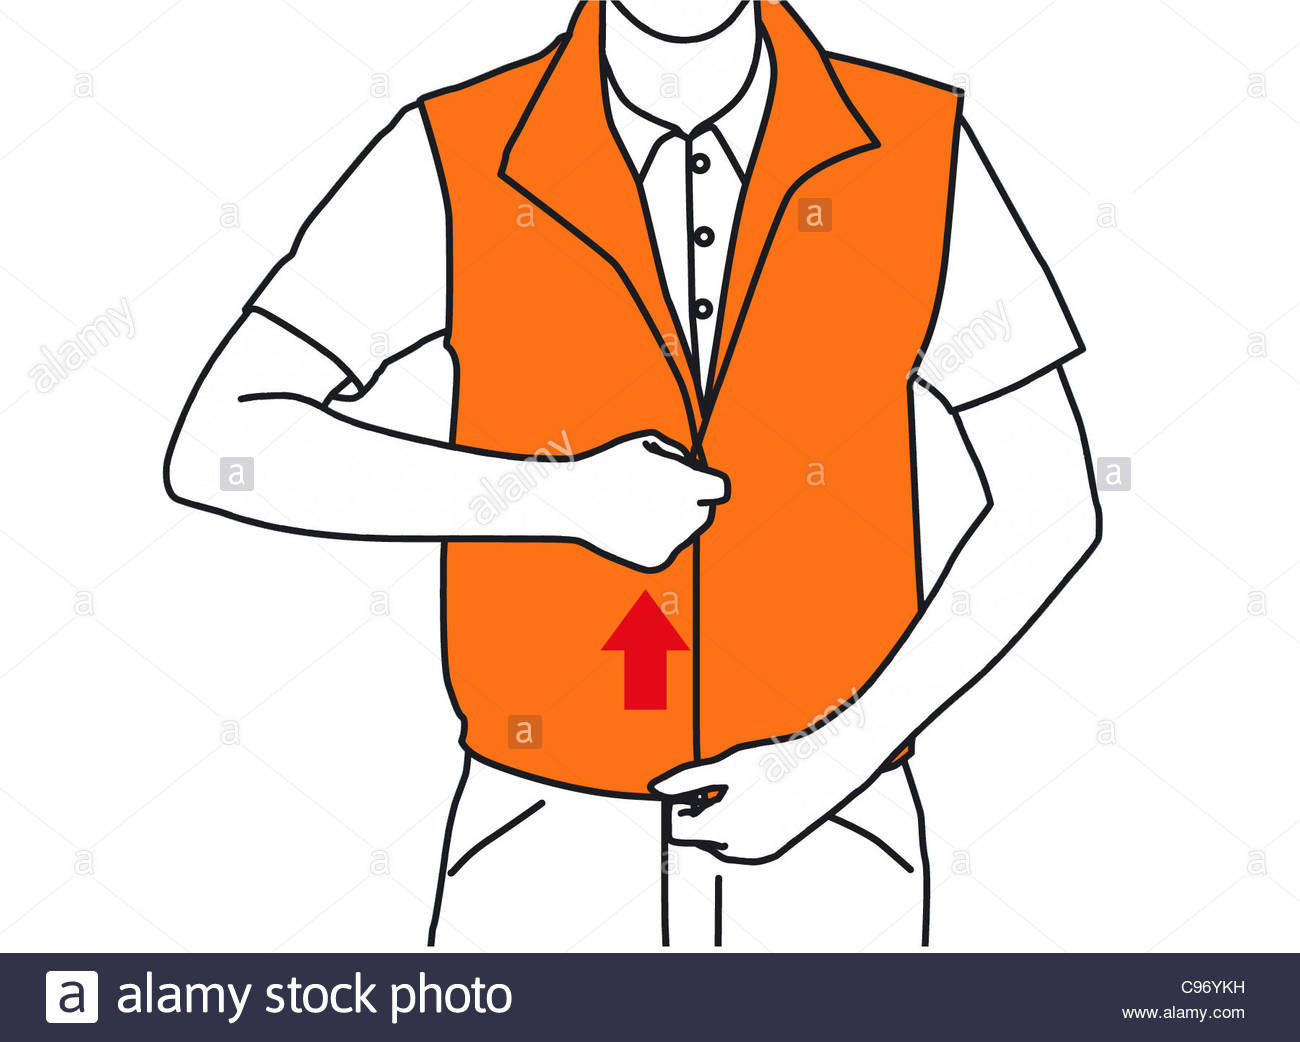 Safety Harness Illustration Stock Photos & Safety Harness ...